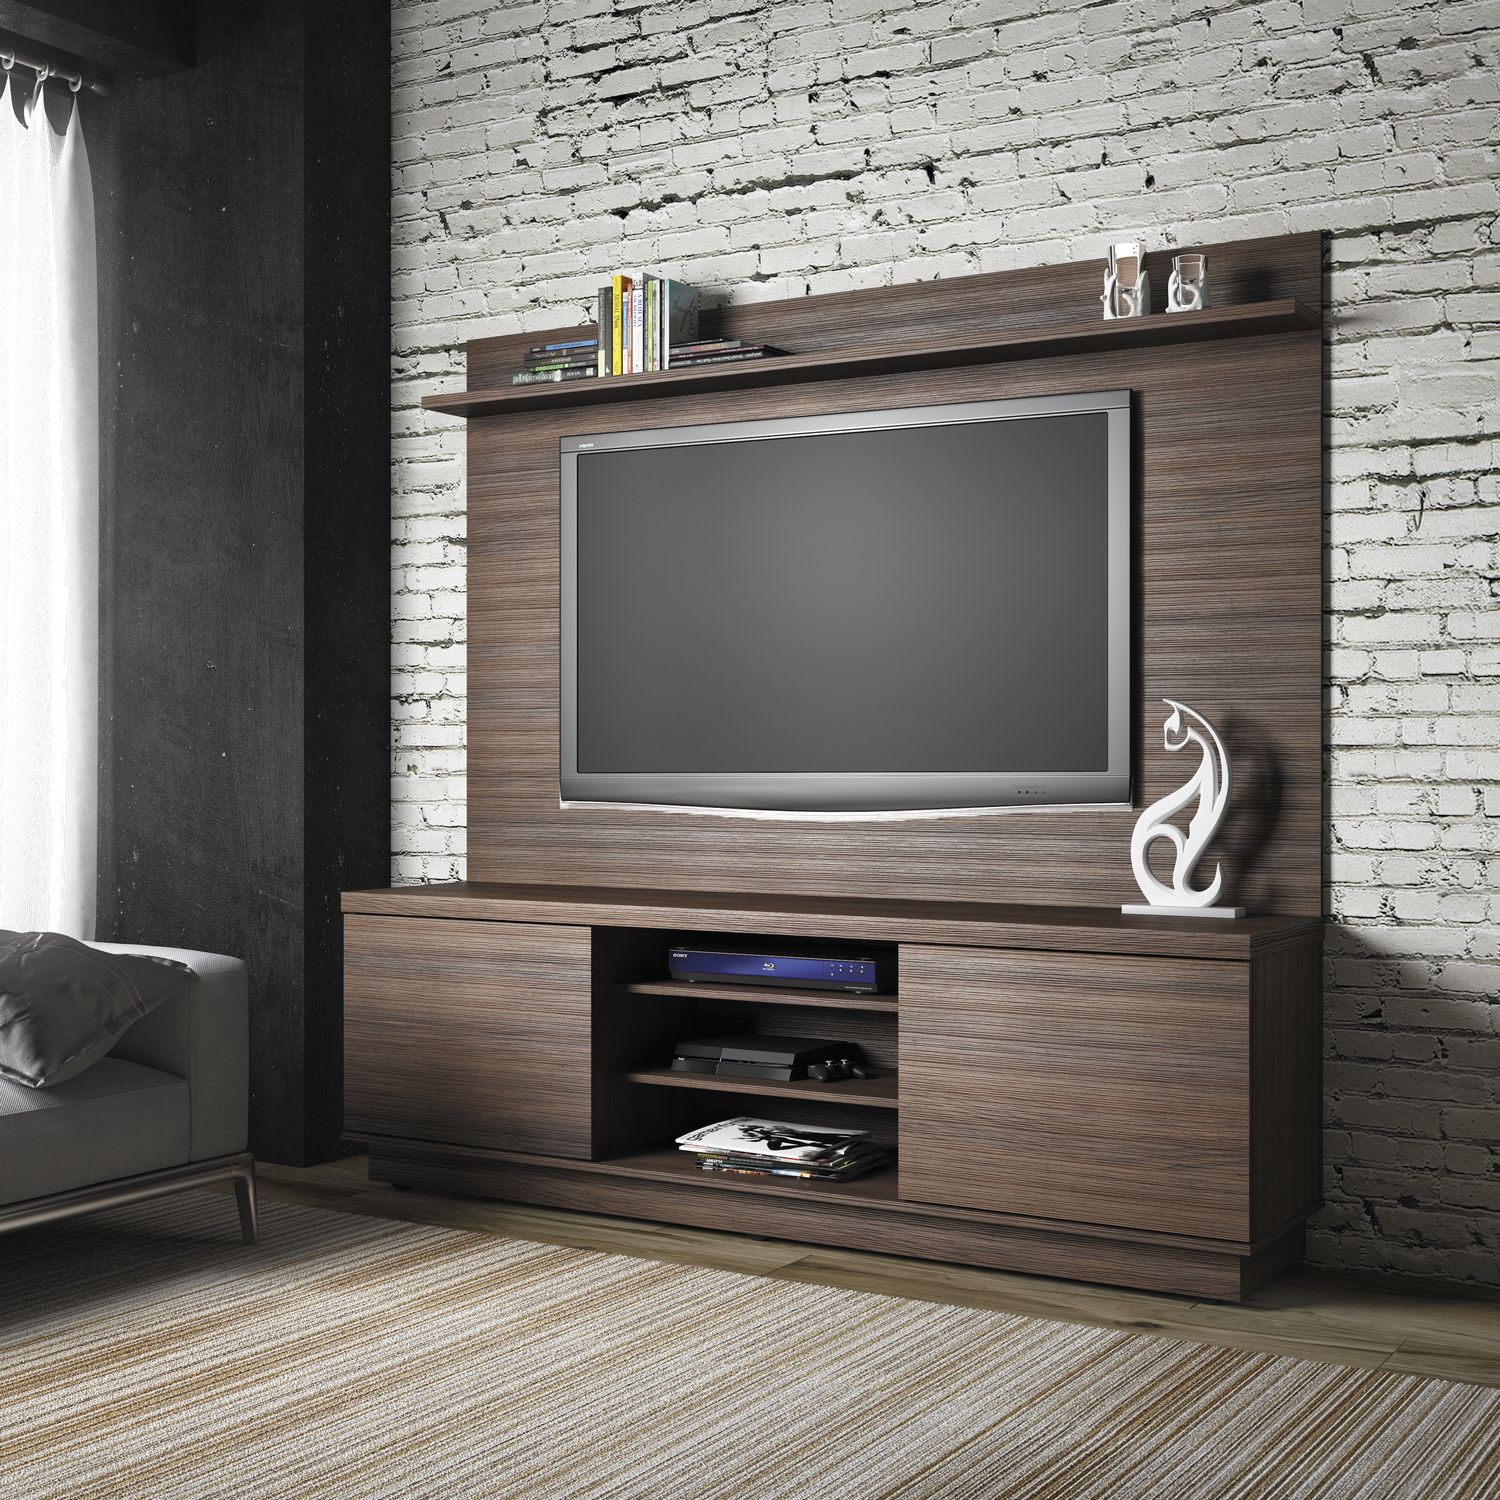 Dica Hometheater Ajuda Muito Com A Decora O E Facilita A  # Tv Showcase In Wall